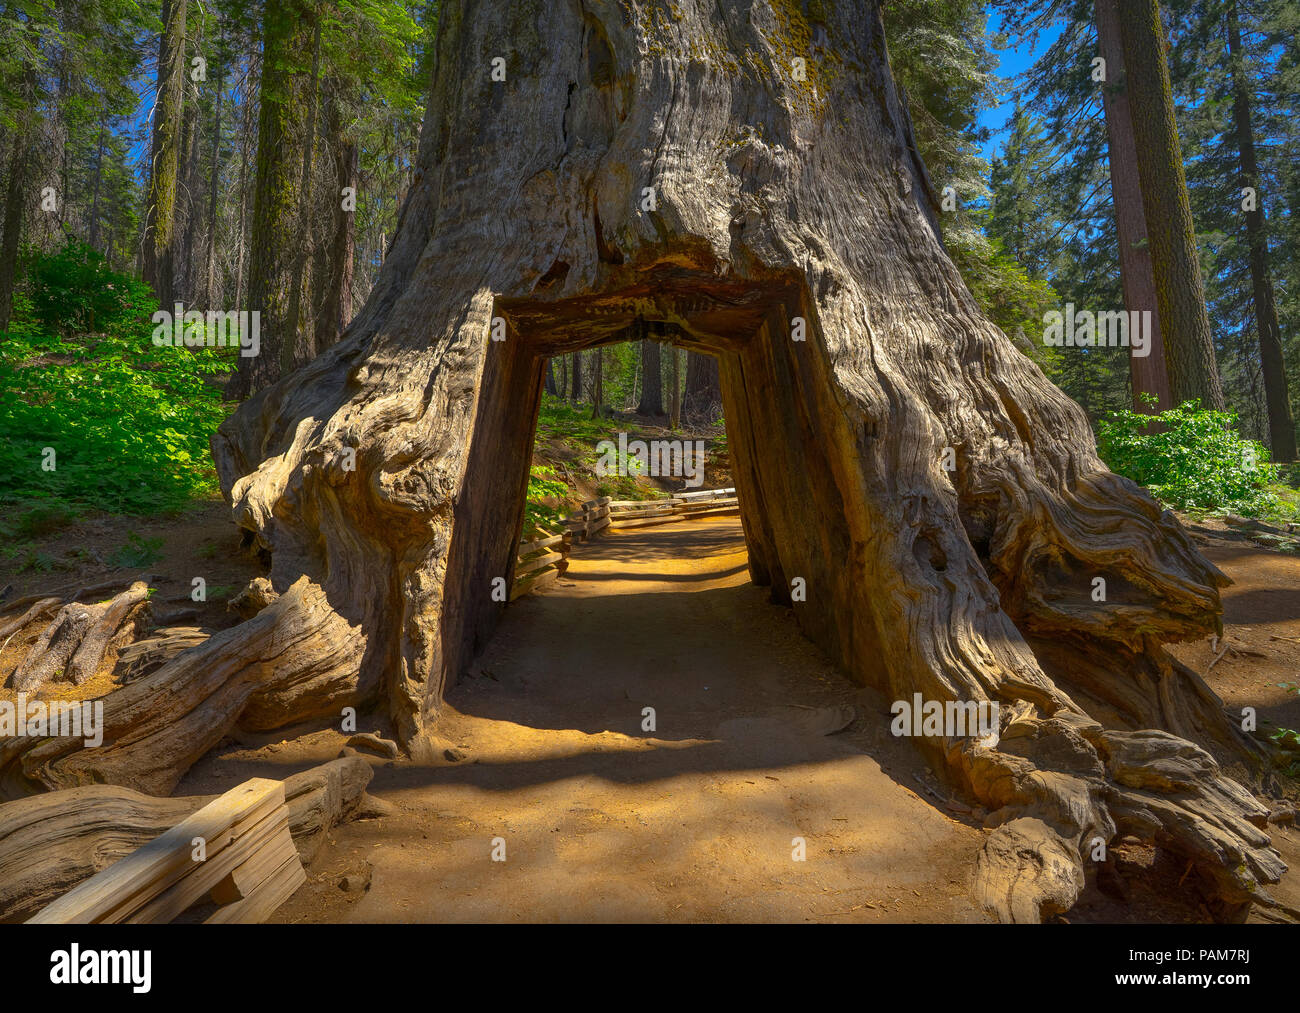 The Tunnel Tree, a Dirt road and hole cut into the trunk of a massive Sequoia on Tuolumne Grove Trail - Yosemite National Park - Stock Image